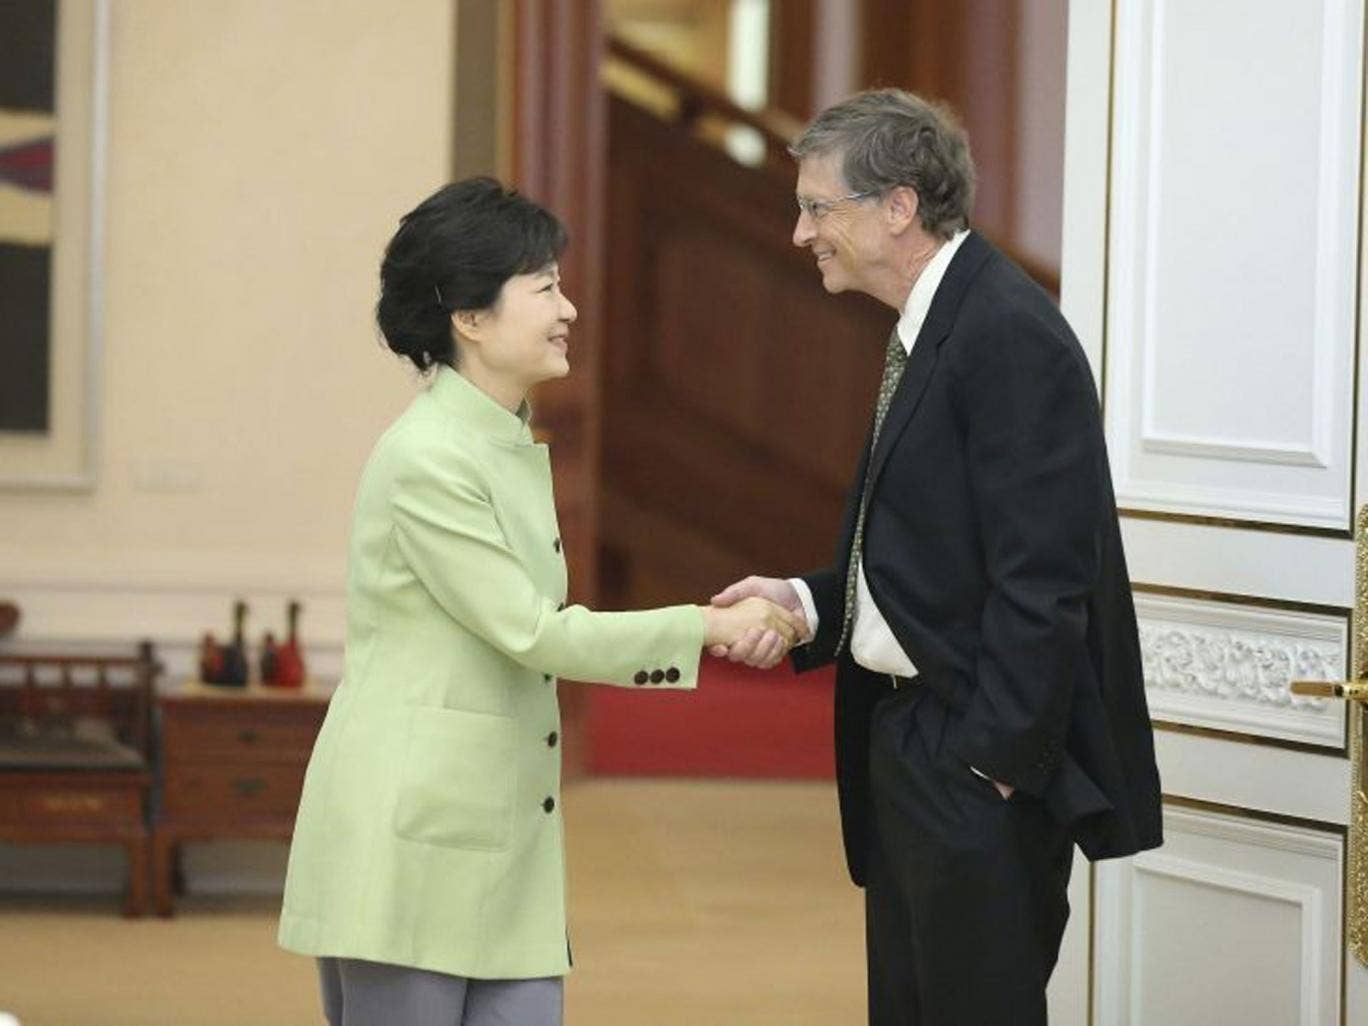 The Microsoft founder has been accused of disrespecting the South Korean President, Park Geun-hye, after he was pictured shaking hands with her - with his other hand firmly in his pocket.